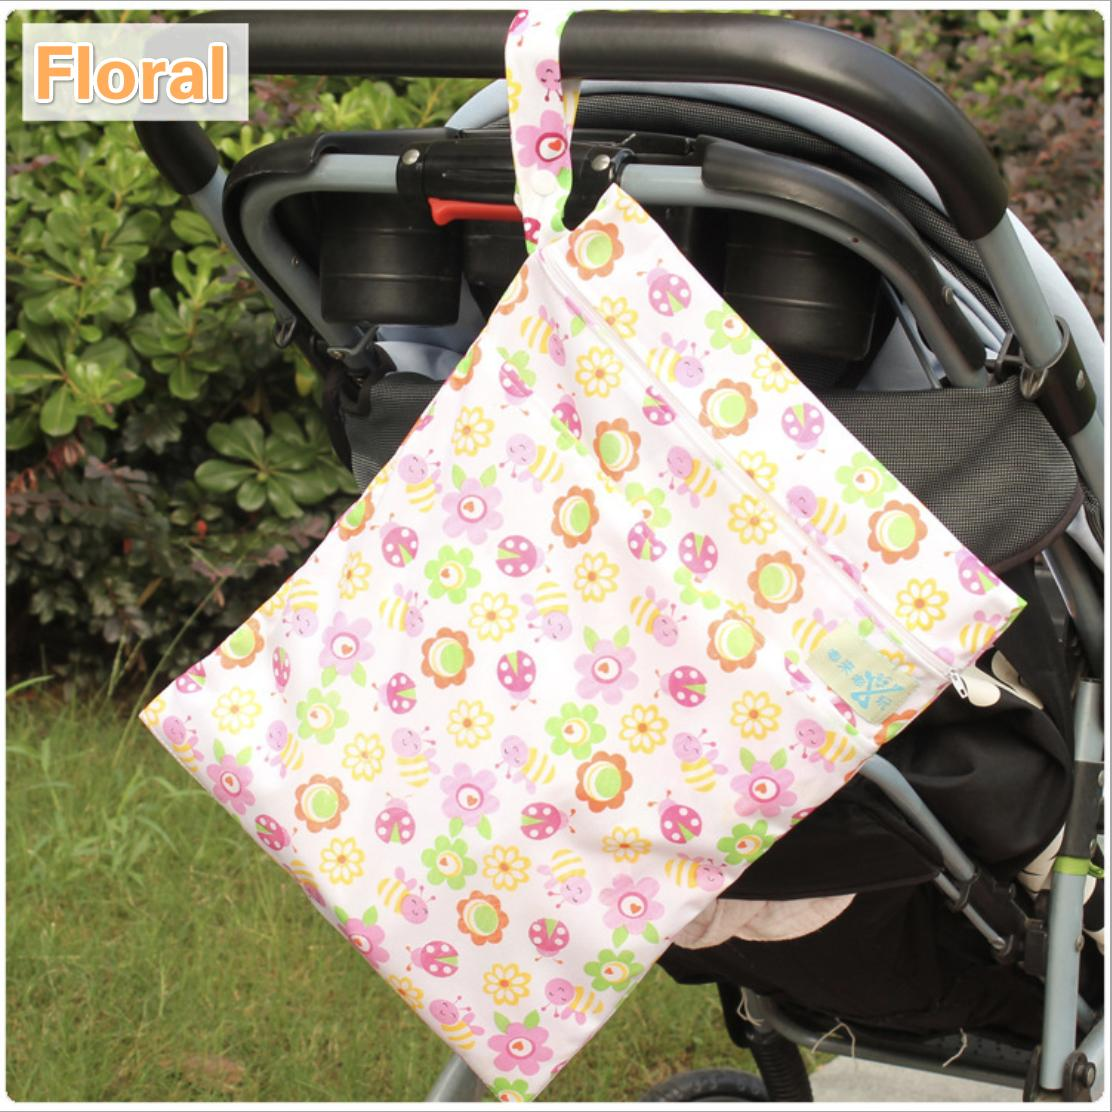 2in1 Waterproof Baby Double Diaper Bags Reusable Washable Zipper Cloth Wet Dry Bag Tote For Nappy Storagebag 30*40cm By Mycozyshop.